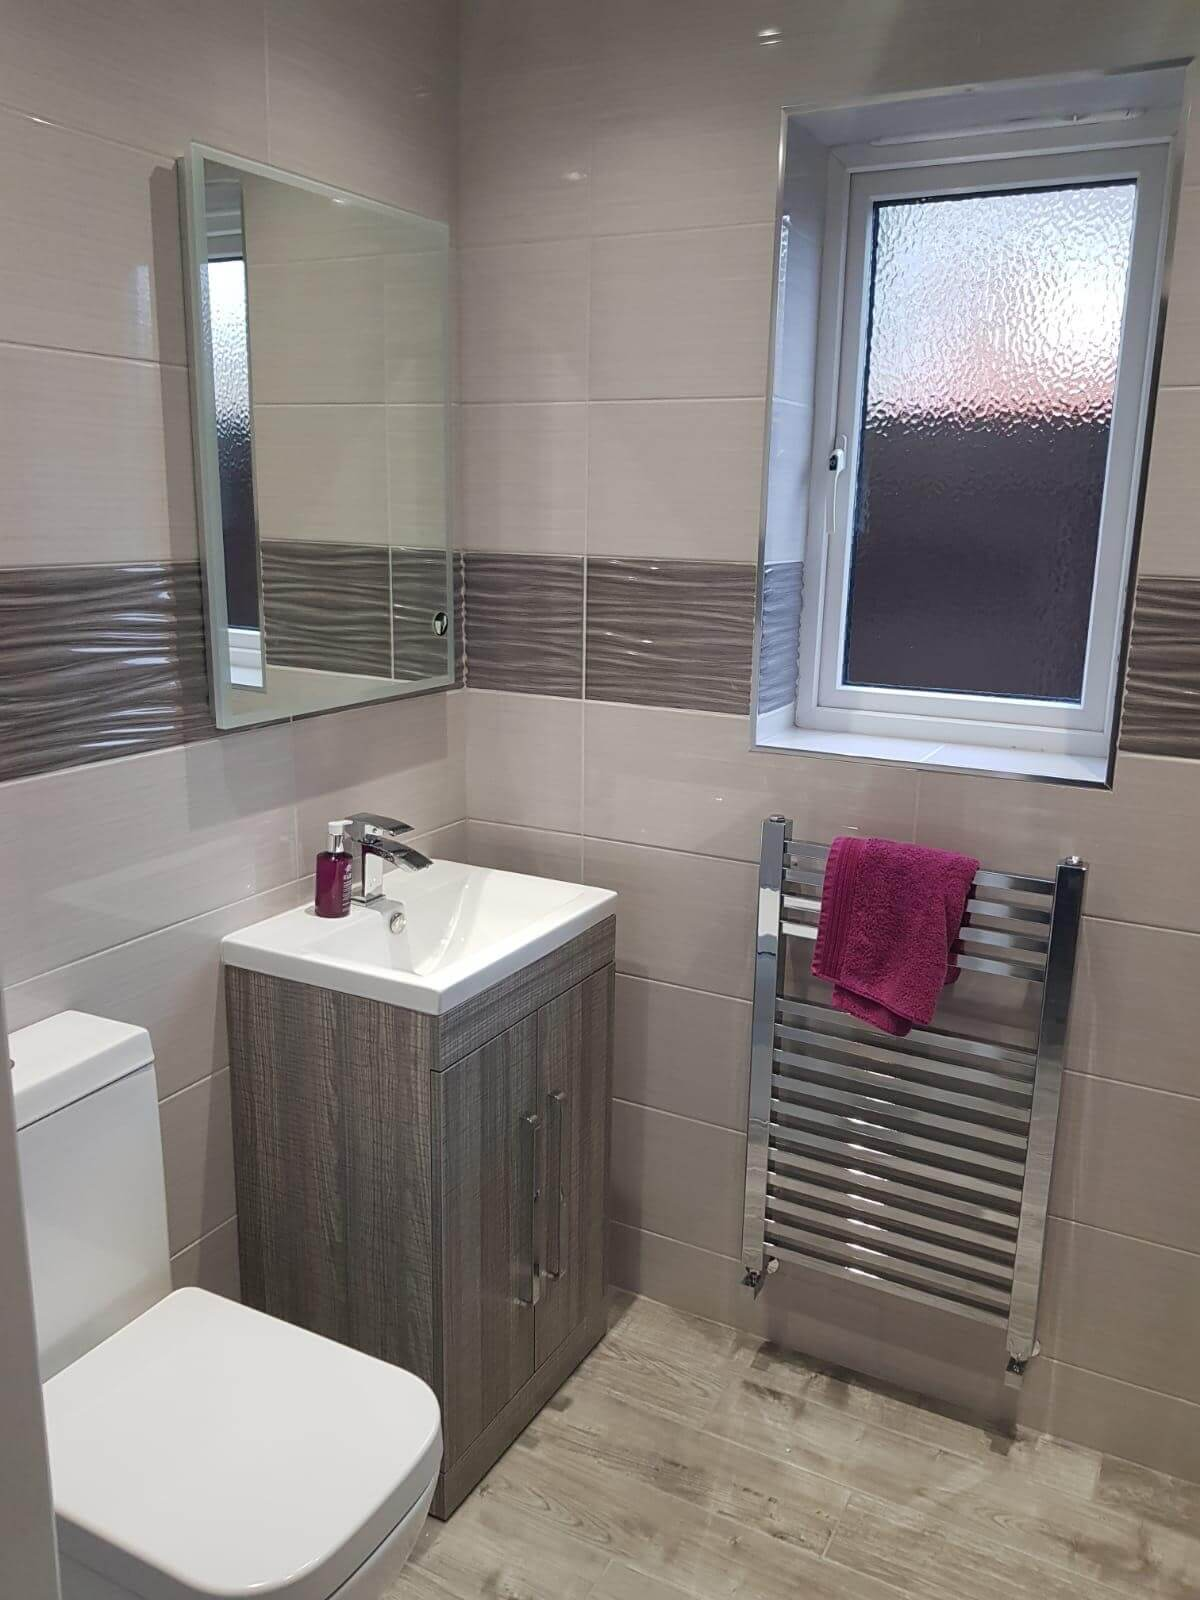 This image shows a bathroom refurbishment by Celsius Home Improvements at a home in St Helens, Merseyside